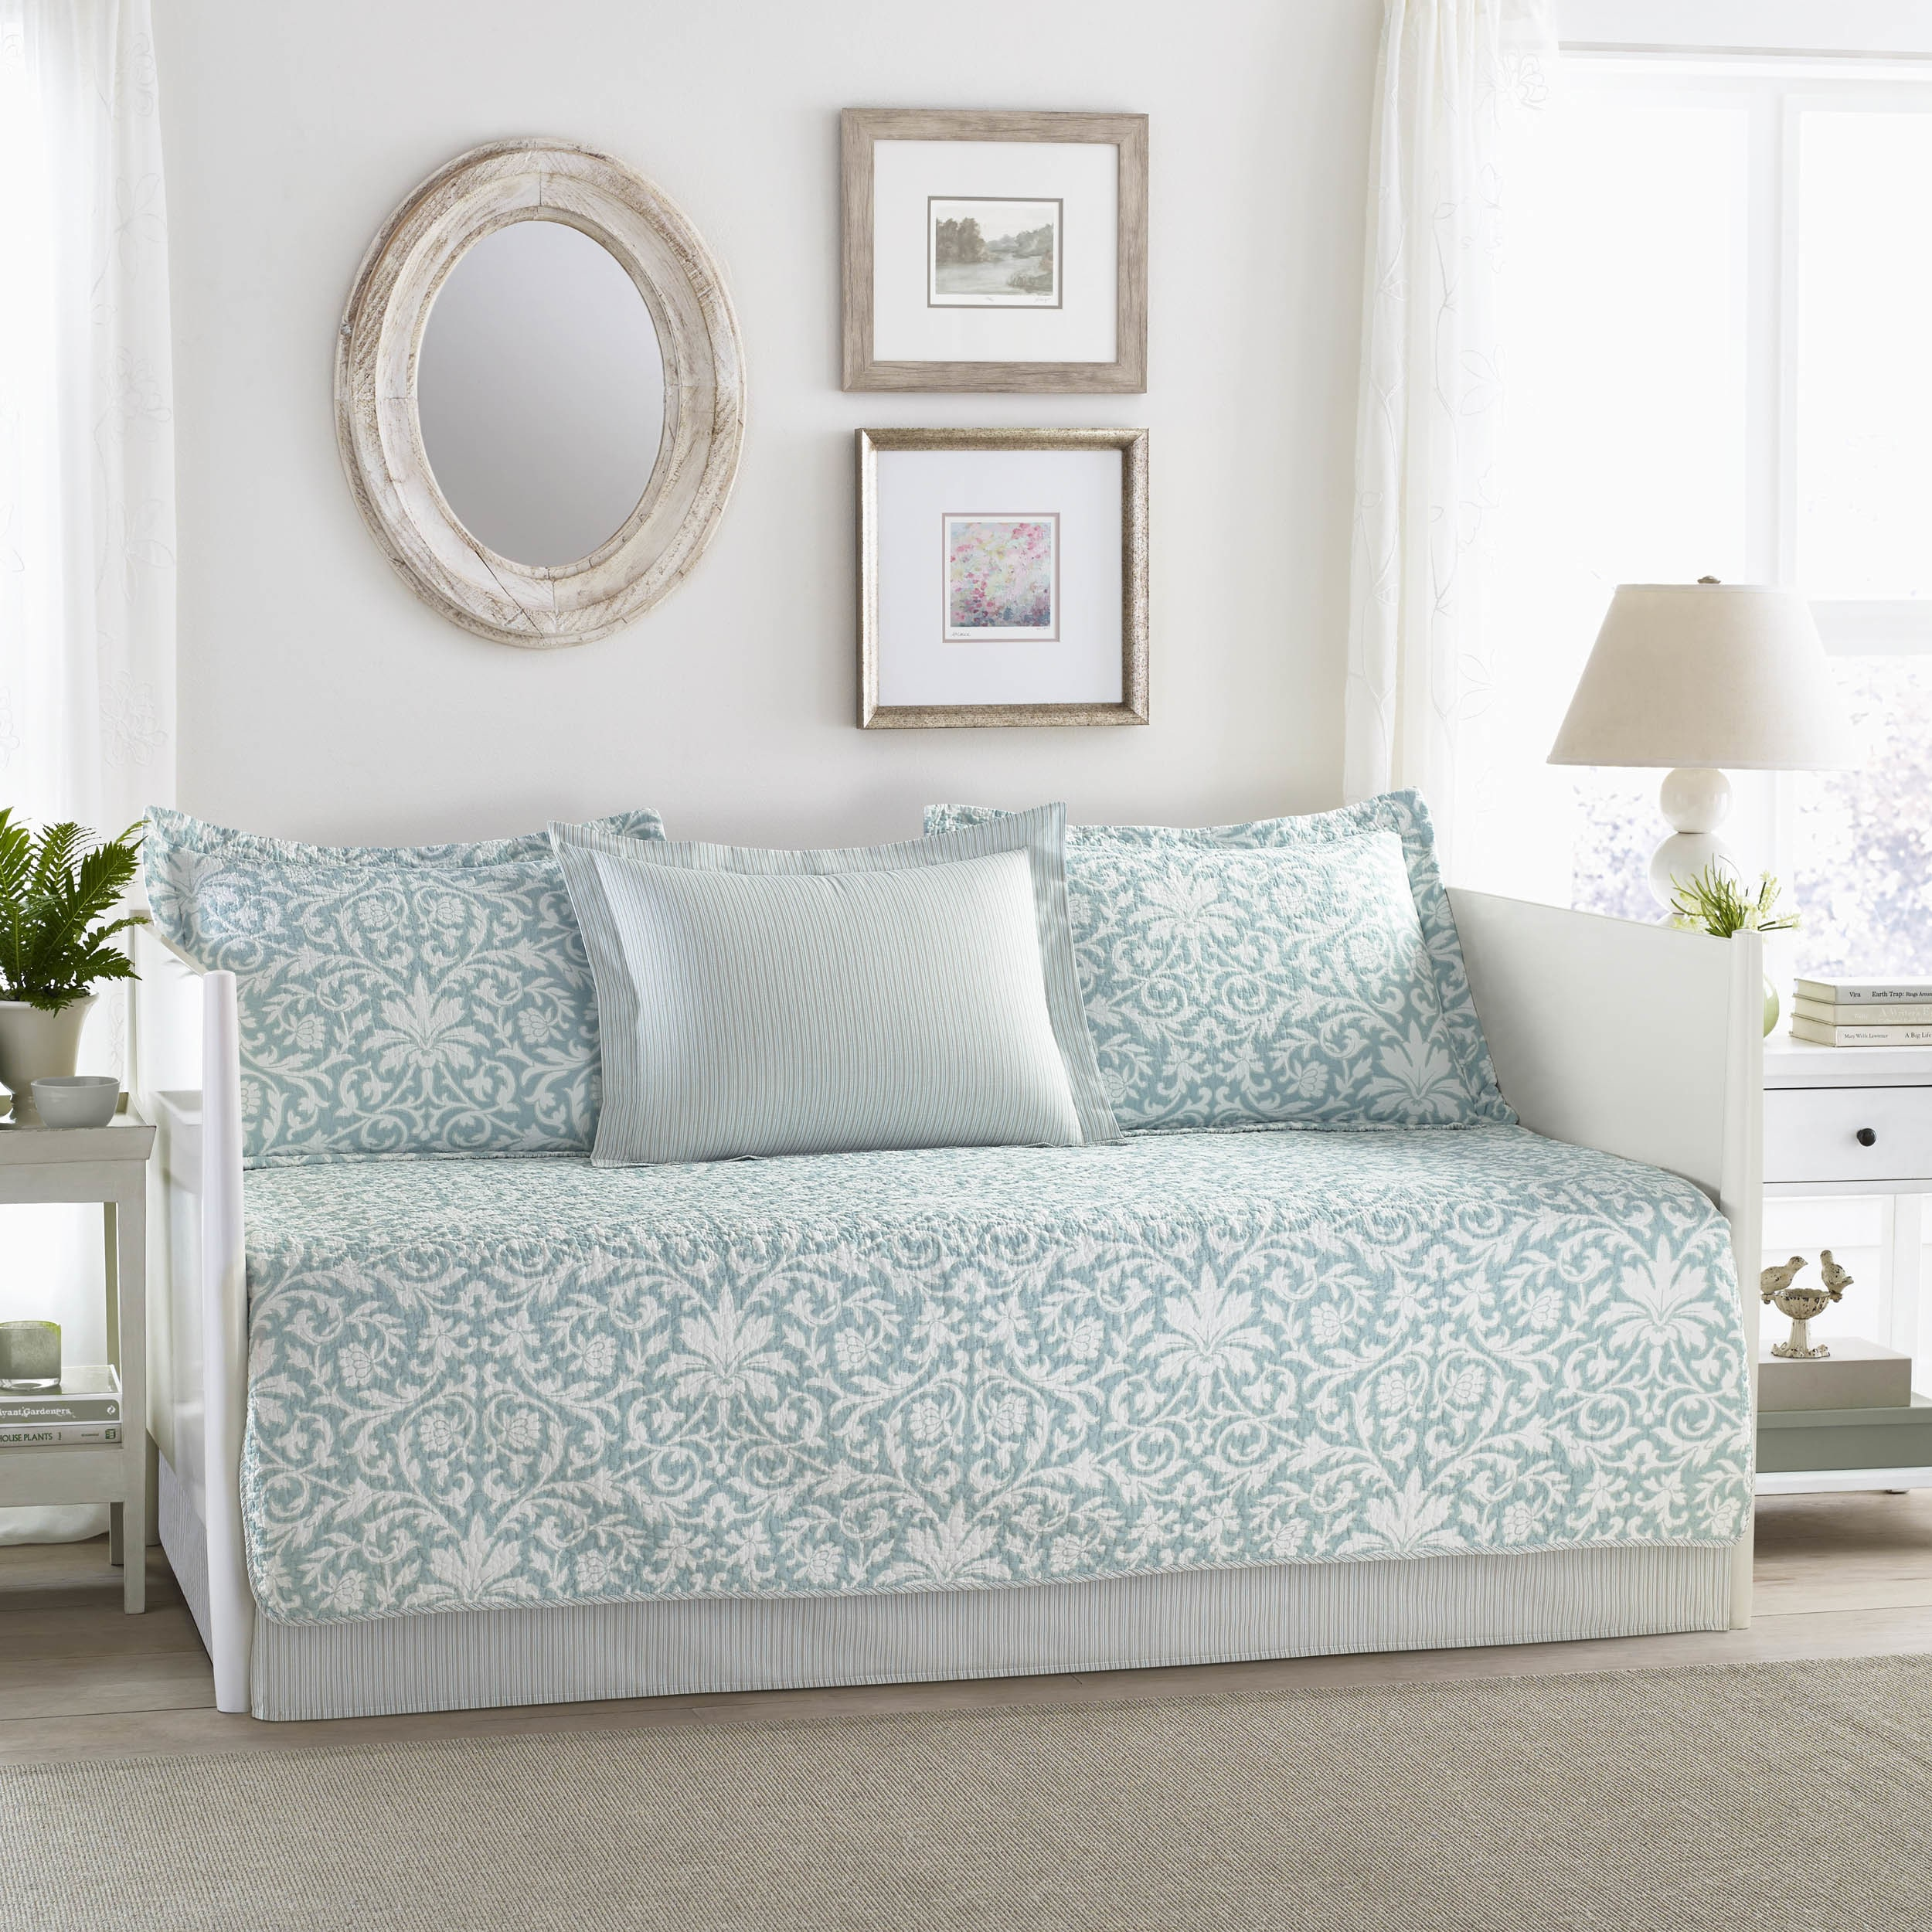 Laura Ashley Mia Blue 5 Piece Daybed Cover Set Overstock 17982837